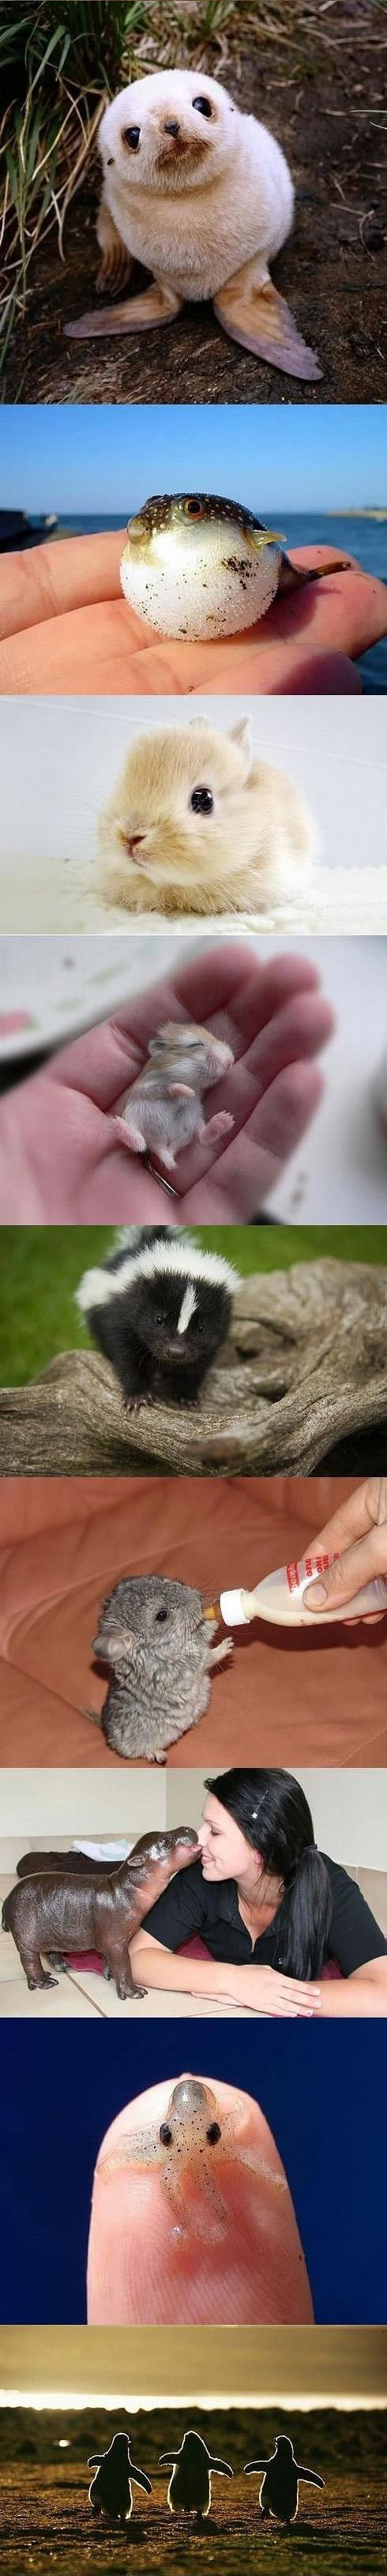 OMG. Adorable Precious Baby Animals originally pinned via http://pinterest.com/alararox/